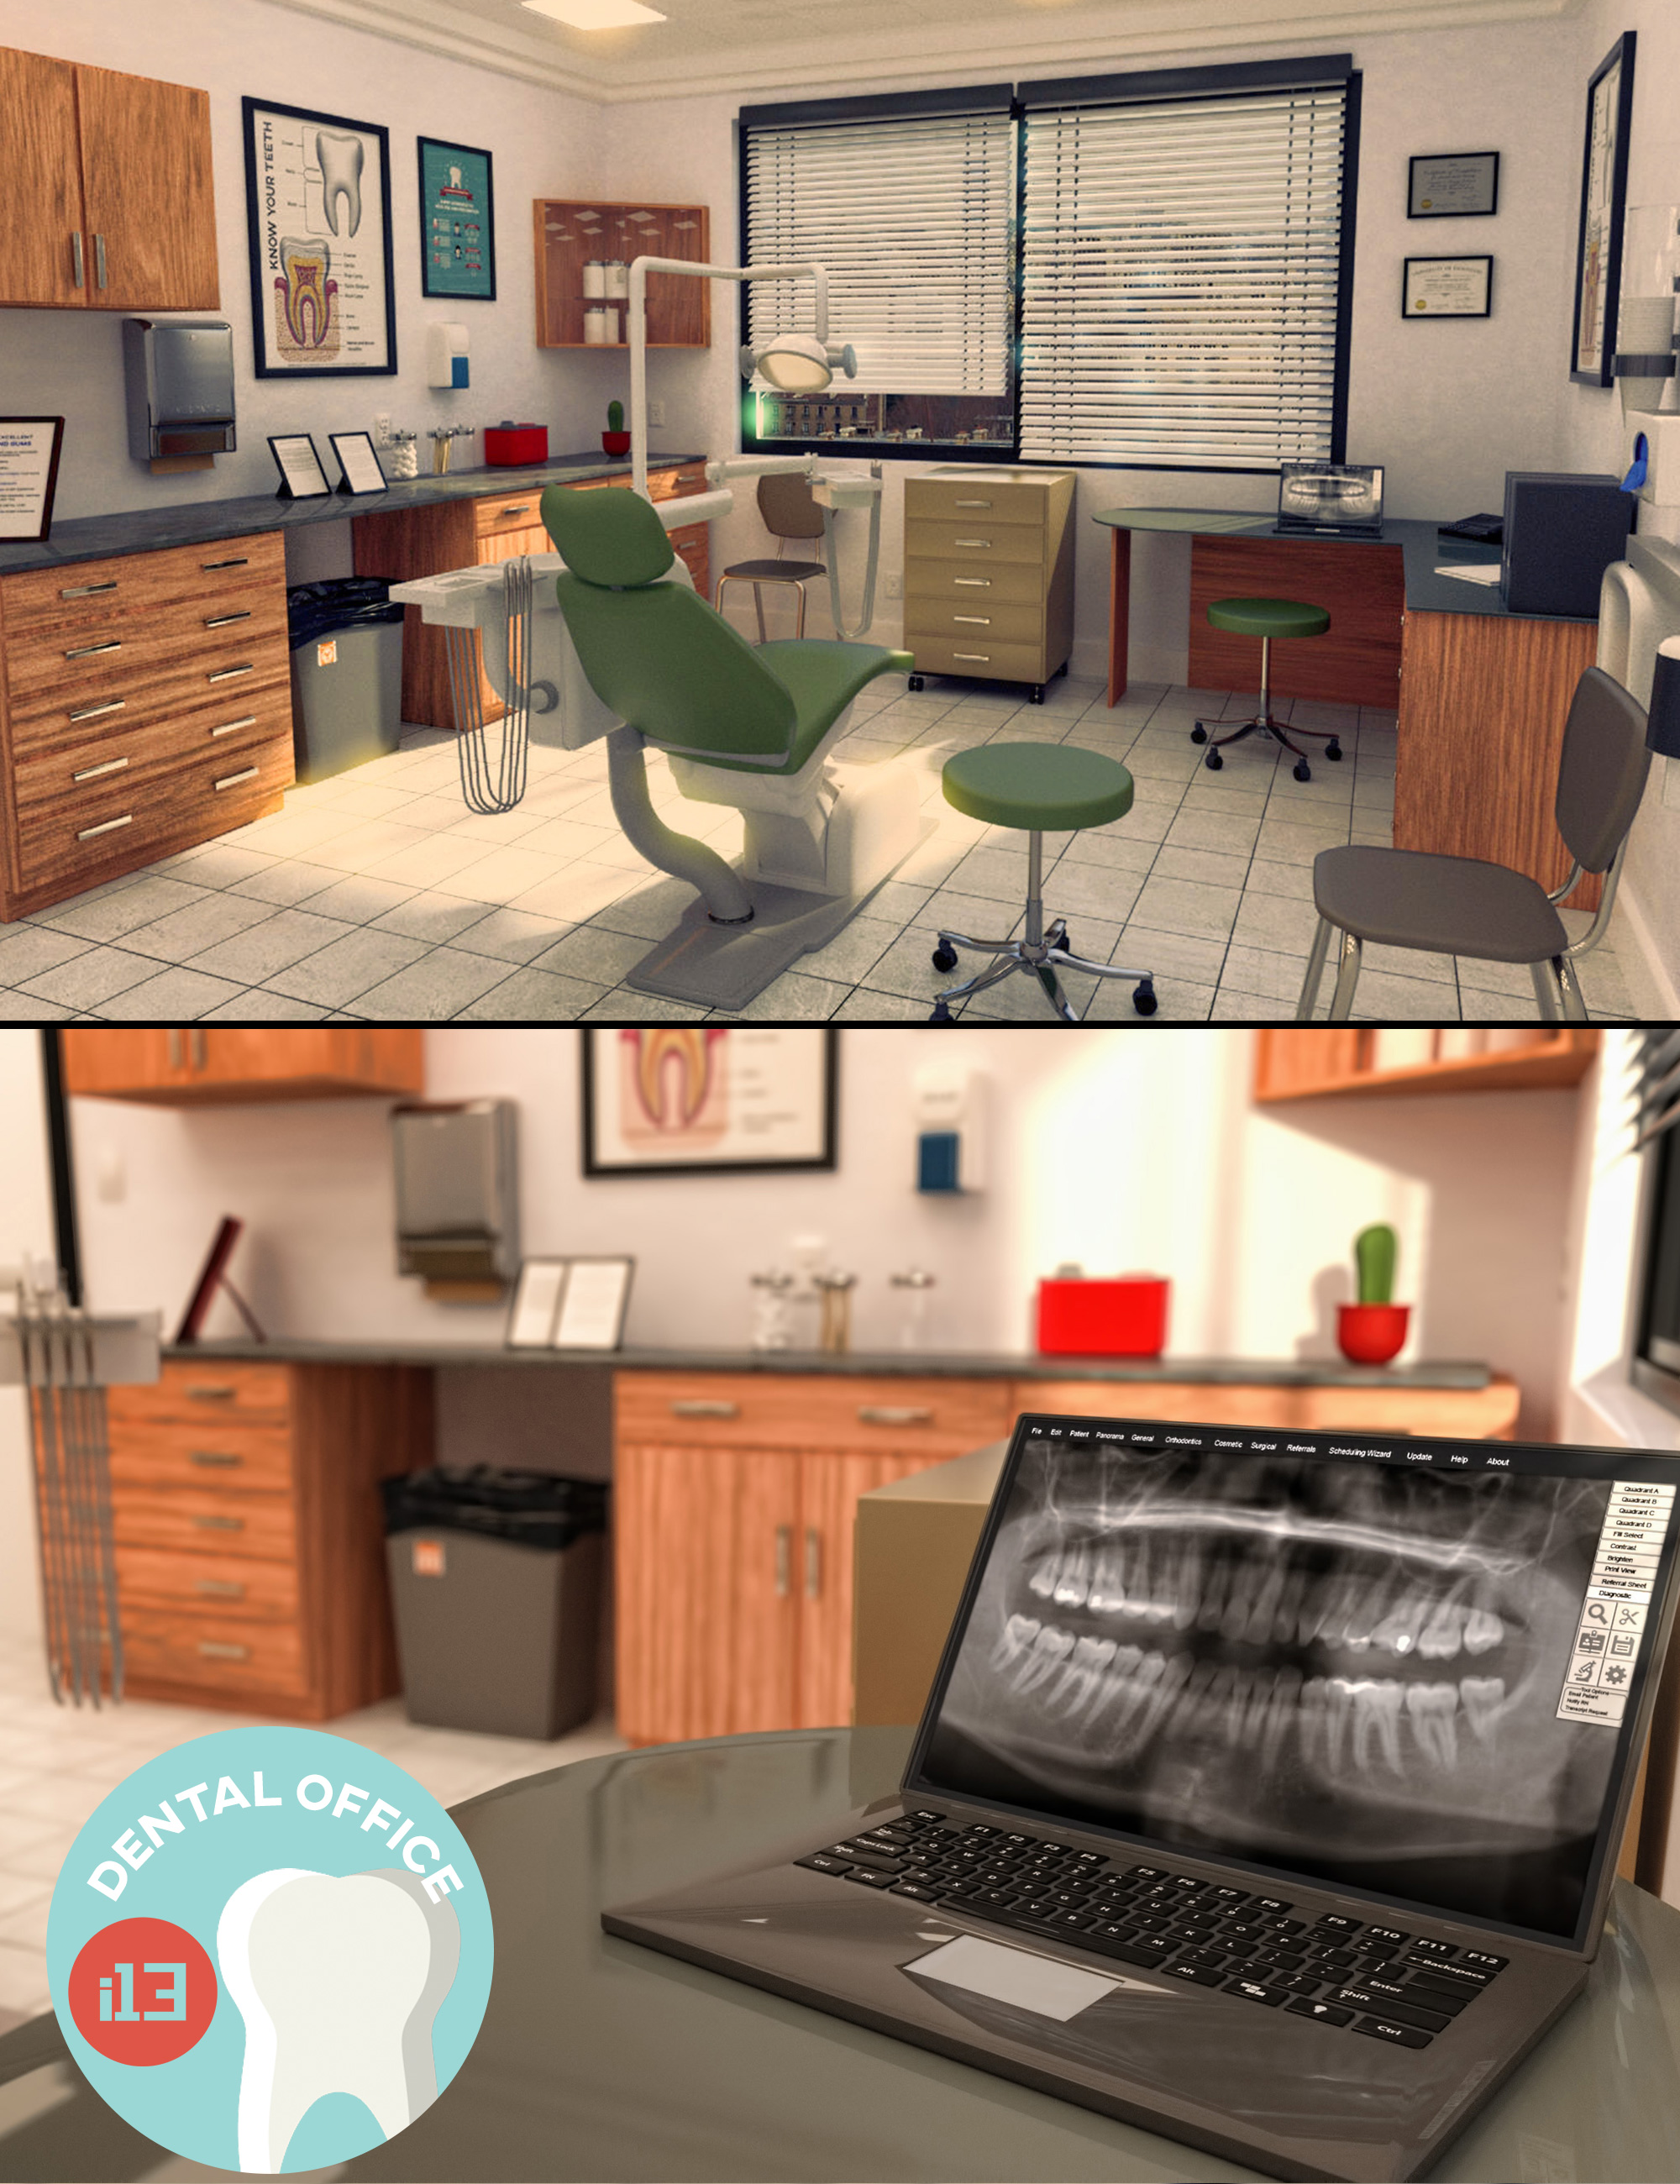 i13 Dental Office Interior by: ironman13, 3D Models by Daz 3D